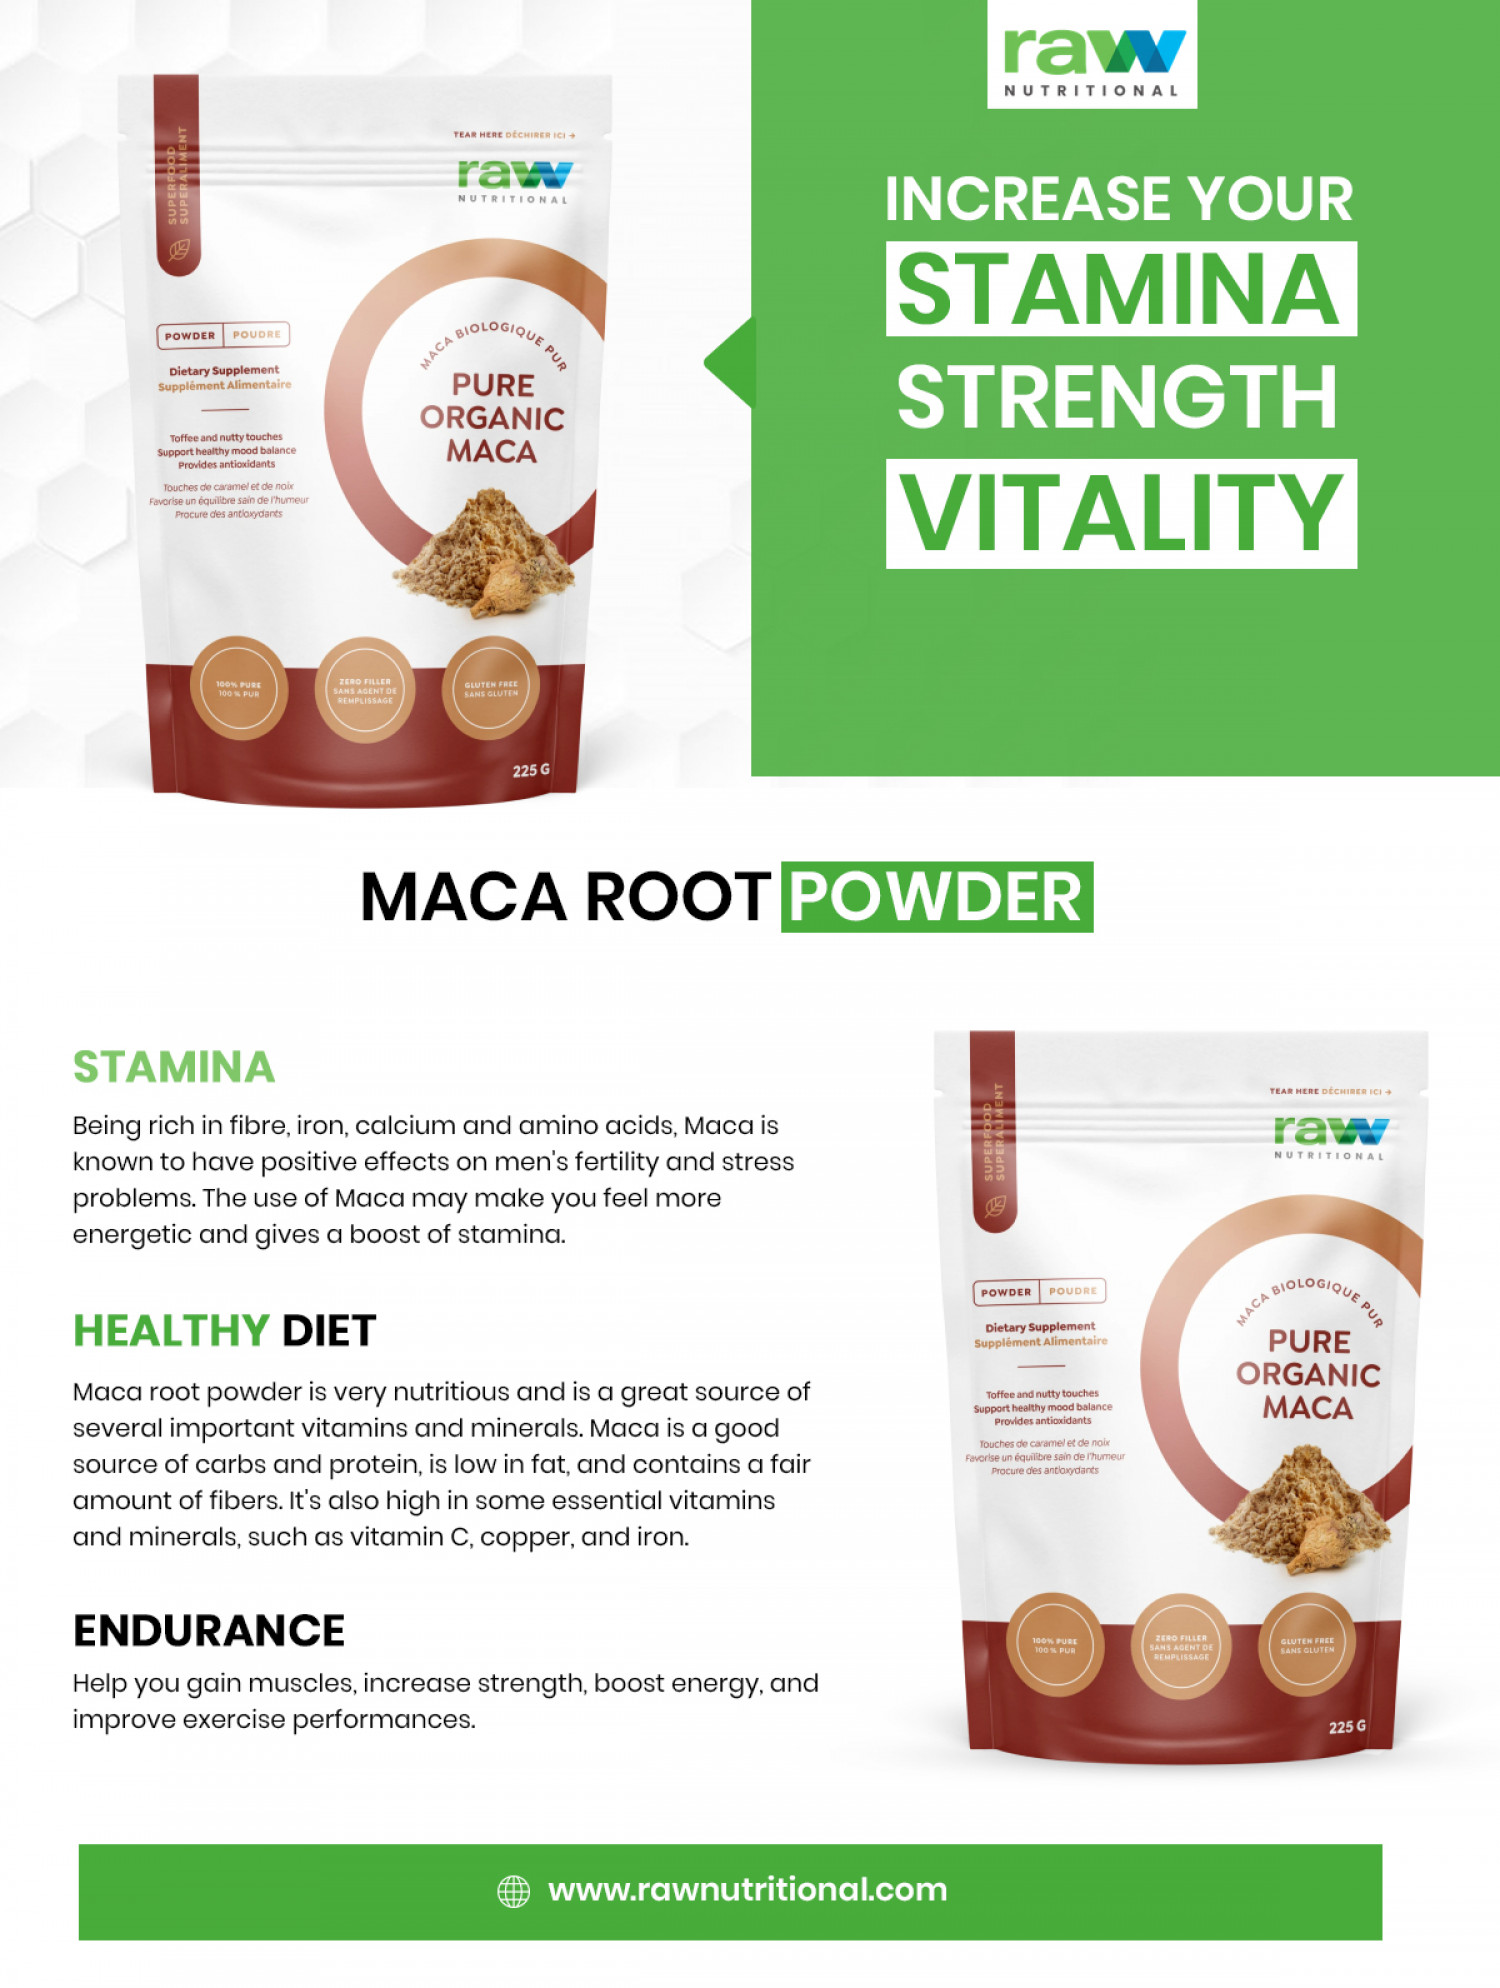 Increase Your Stamina - Strength - Vitality Infographic